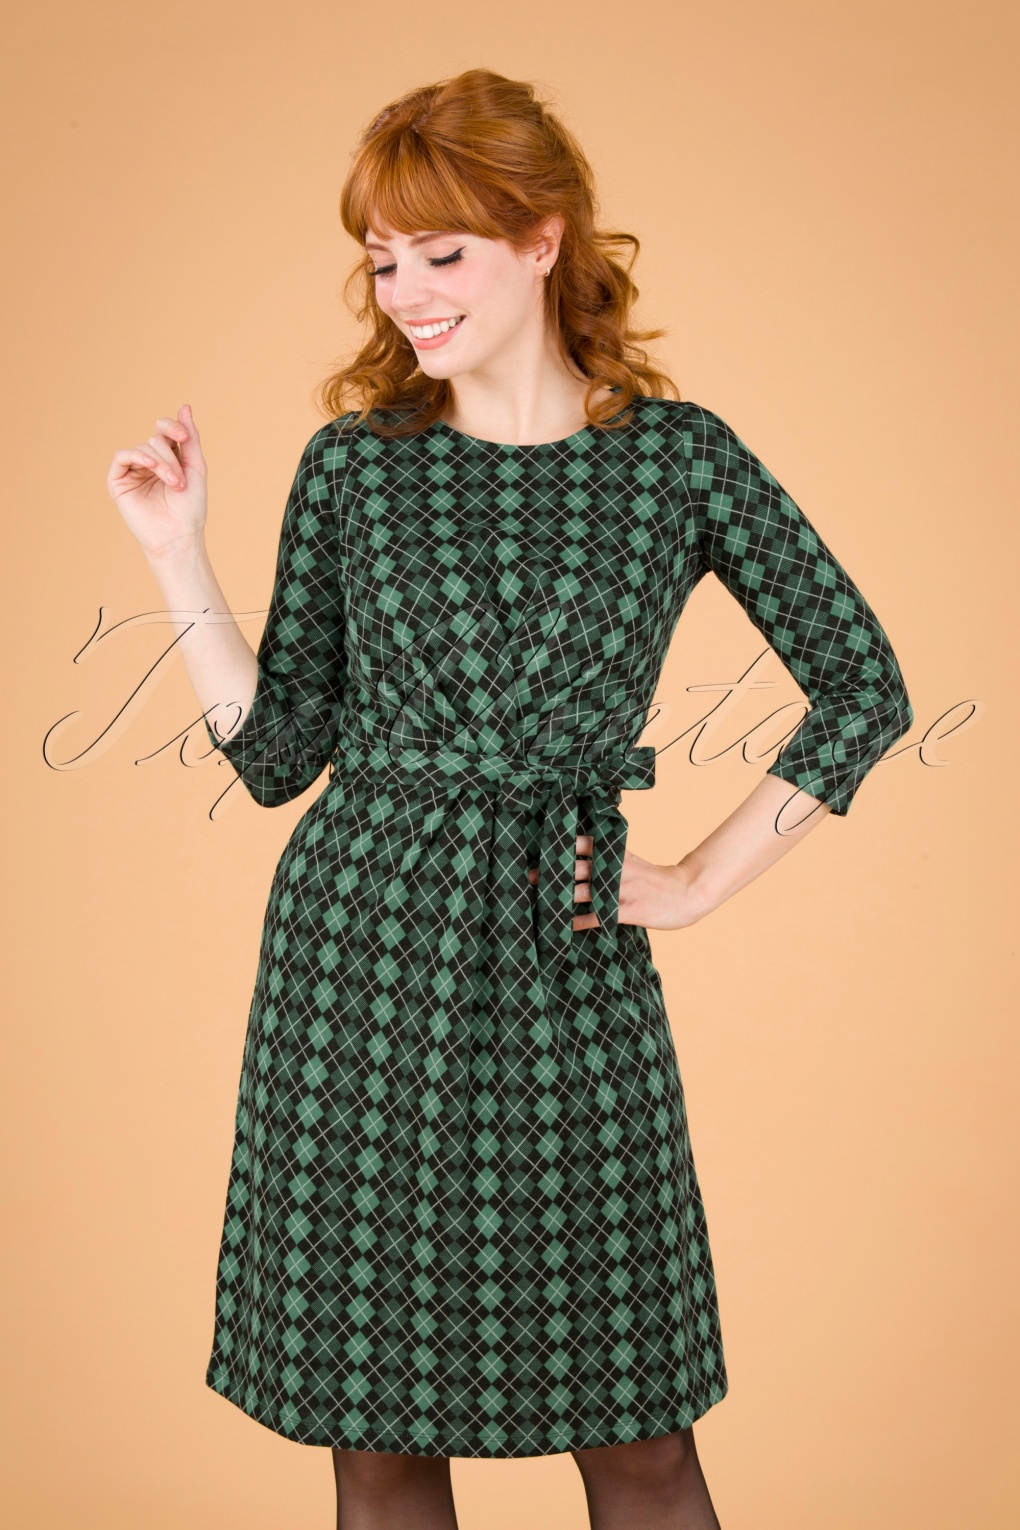 60s Dresses | 1960s Dresses Mod, Mini, Hippie 60s Hailey Aberdeen Dress in Fir Green £91.27 AT vintagedancer.com